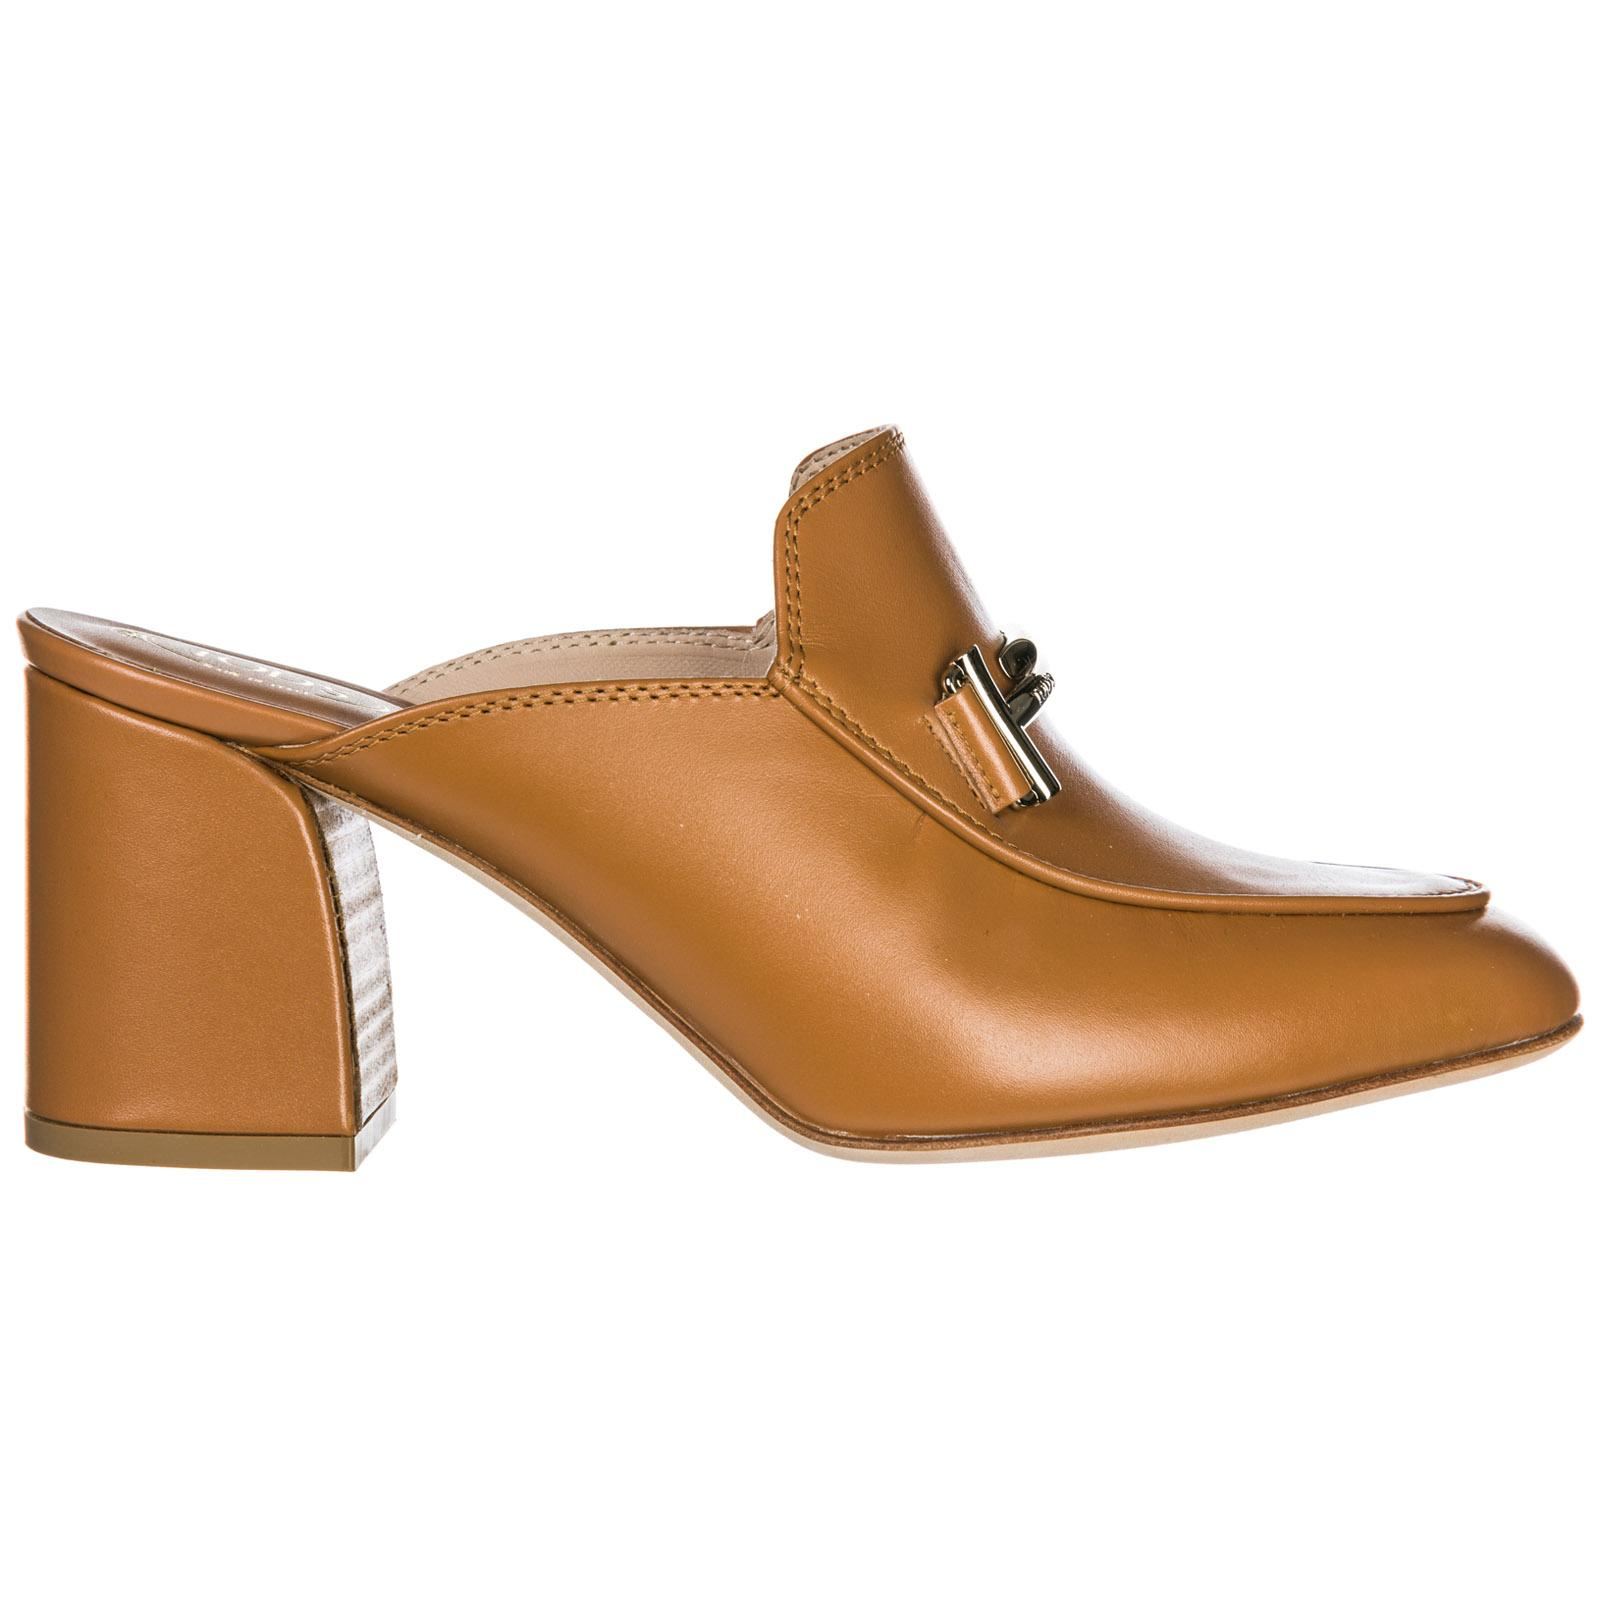 Tod's Women's Leather Mules Clogs Double T In Brown